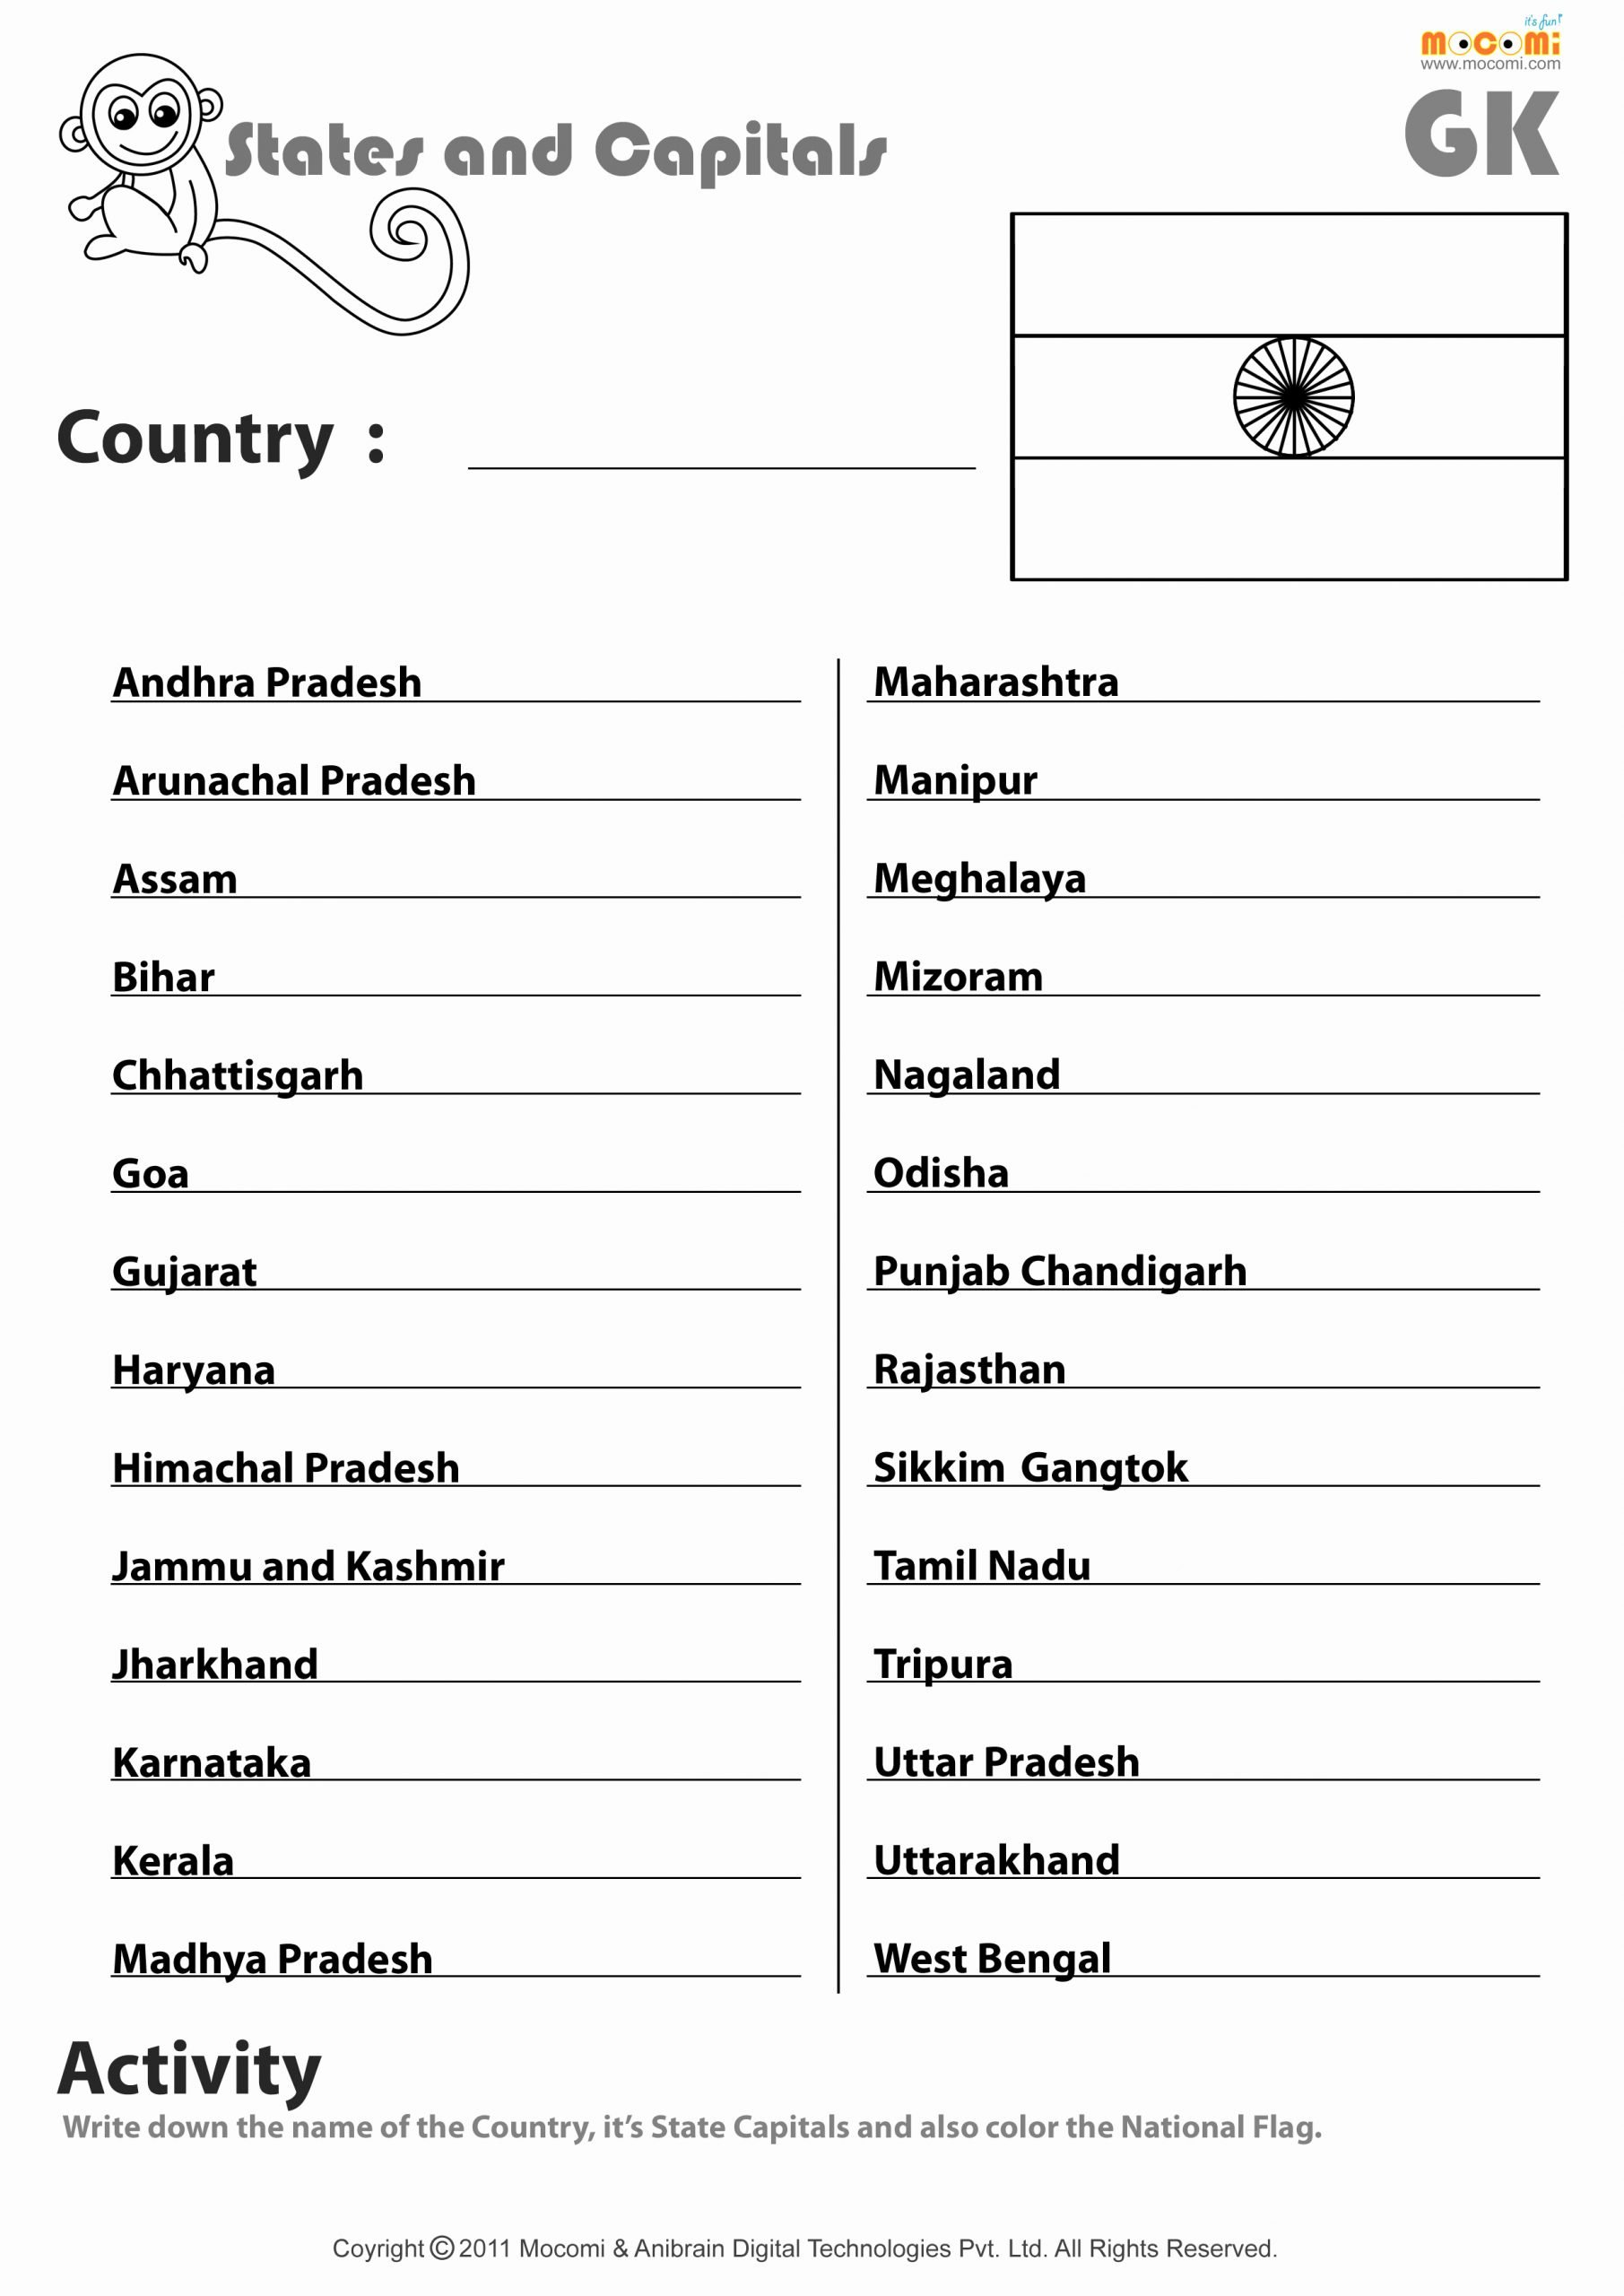 Matching States and Capitals Worksheet Best Of Indian States and their Capitals English Worksheets for